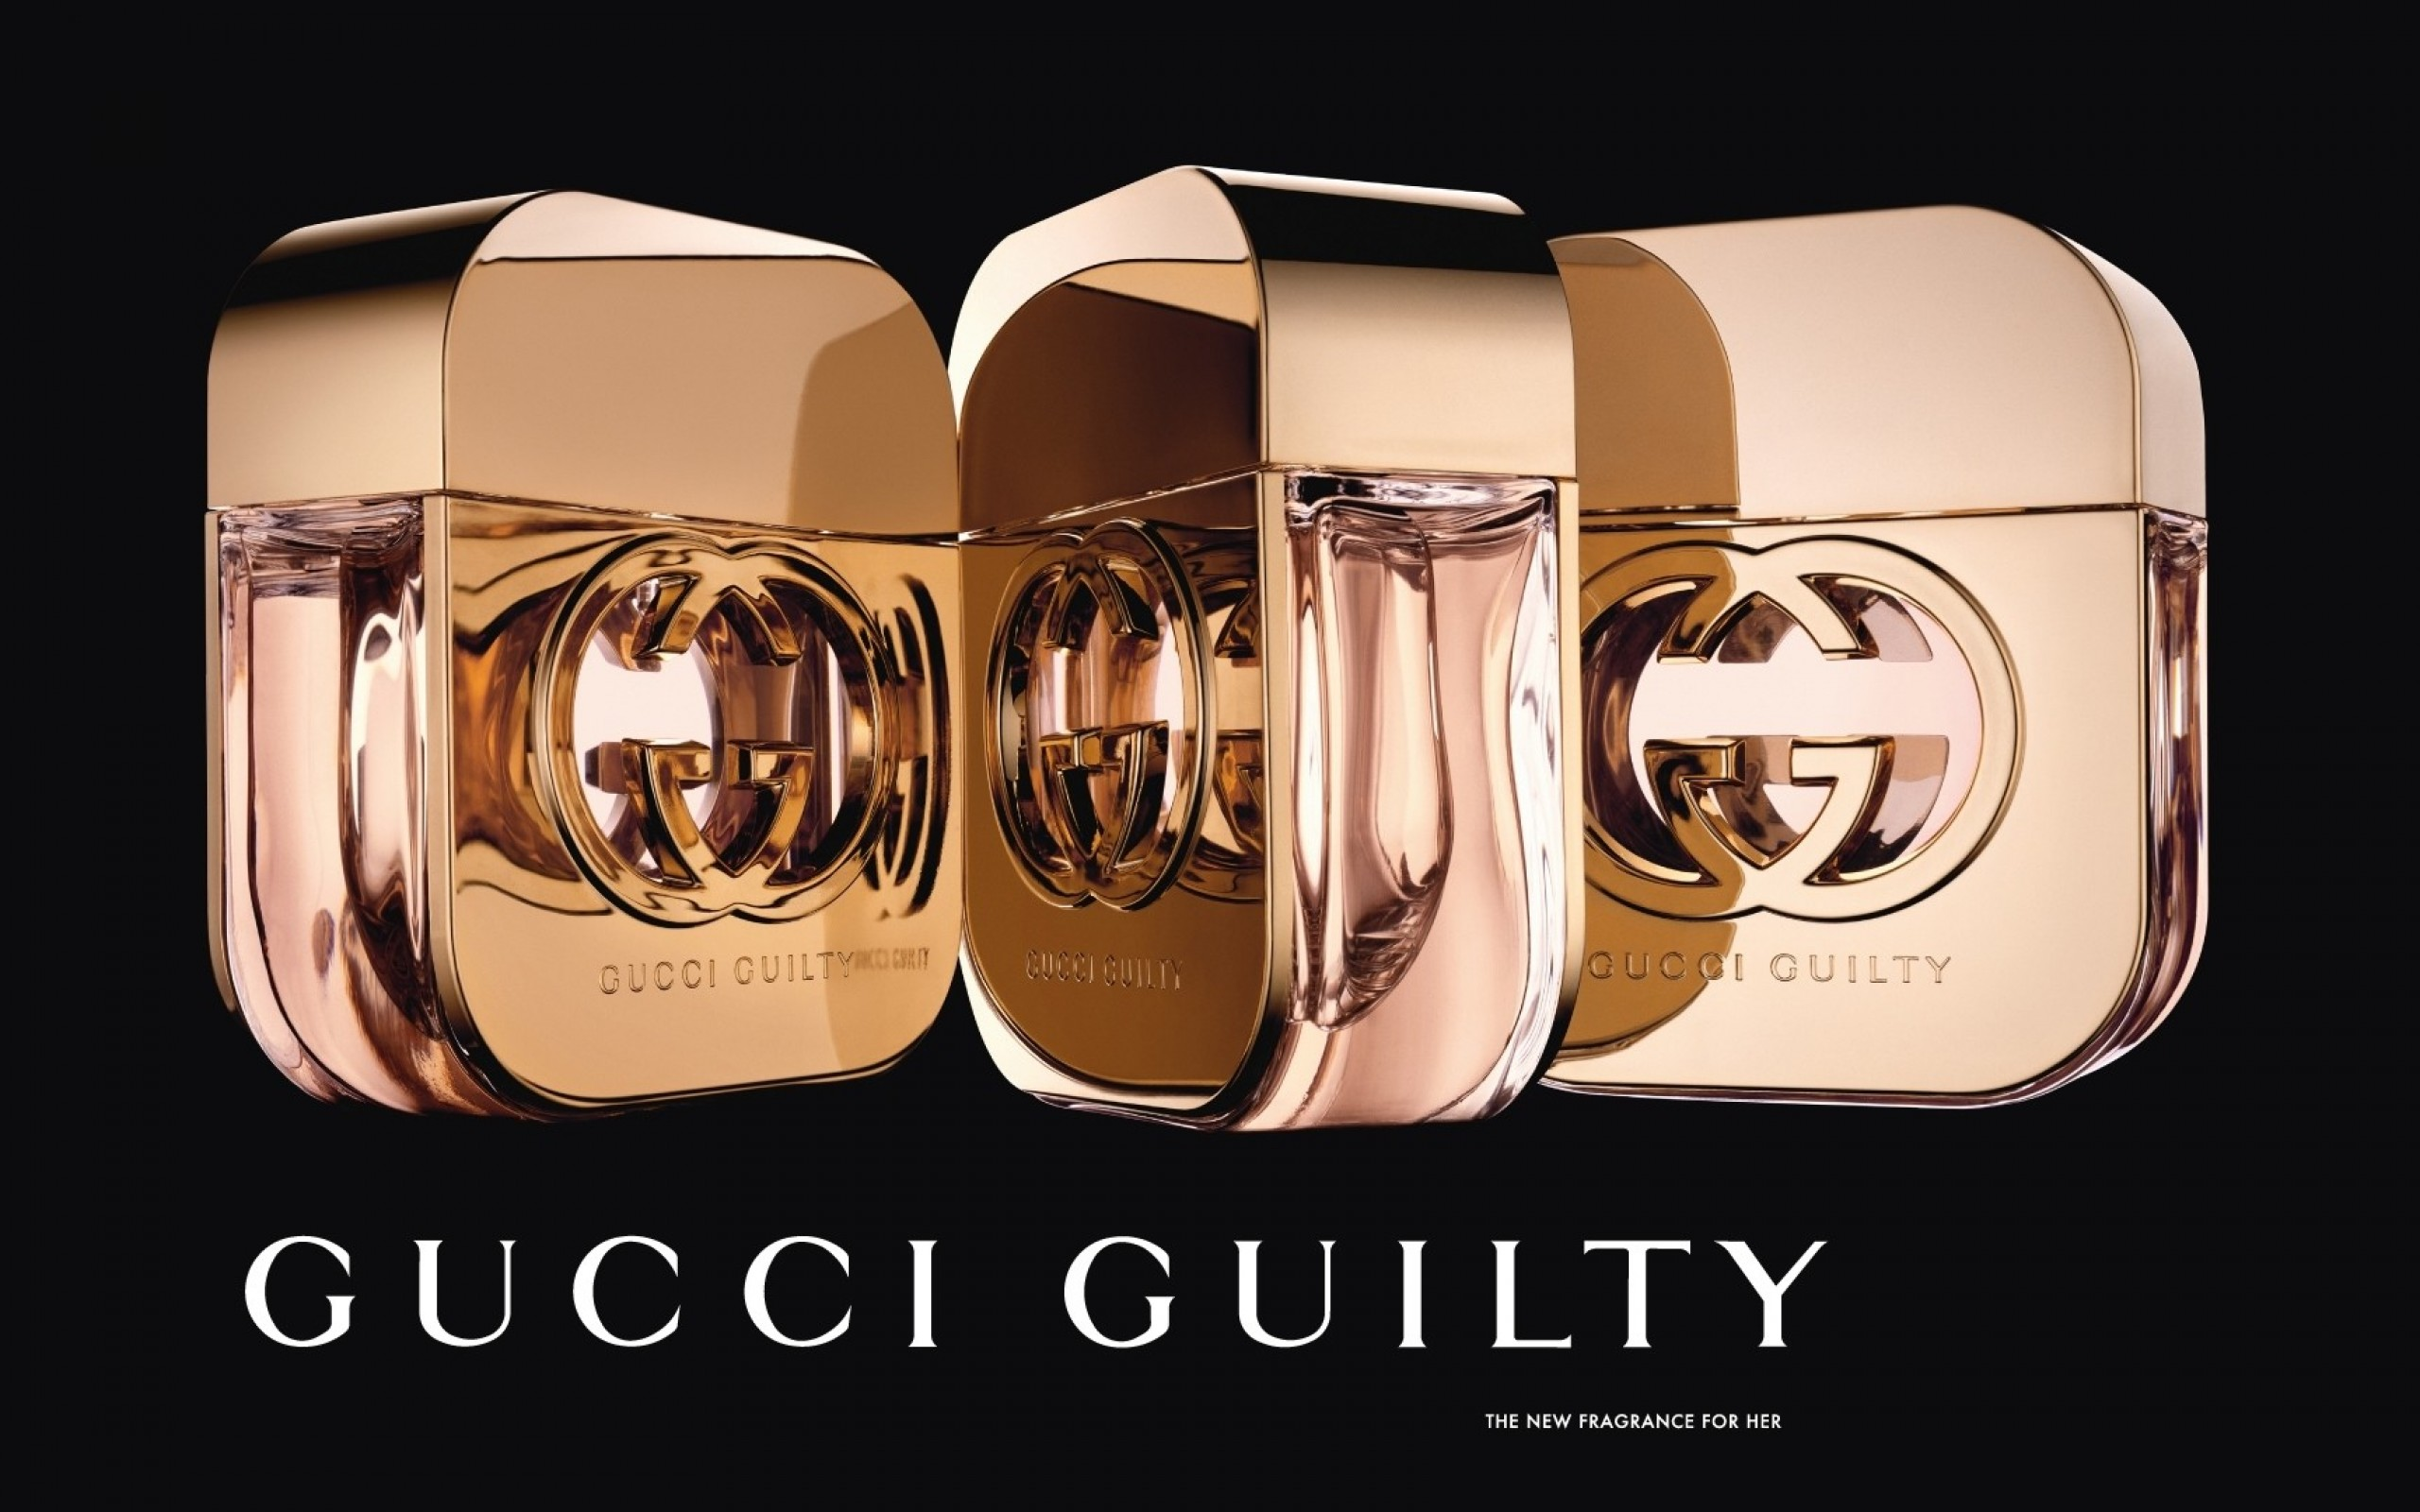 Gucci Guilty Perfume For Her Image Gallery Picture Fashion Wallpapers HD Desktop